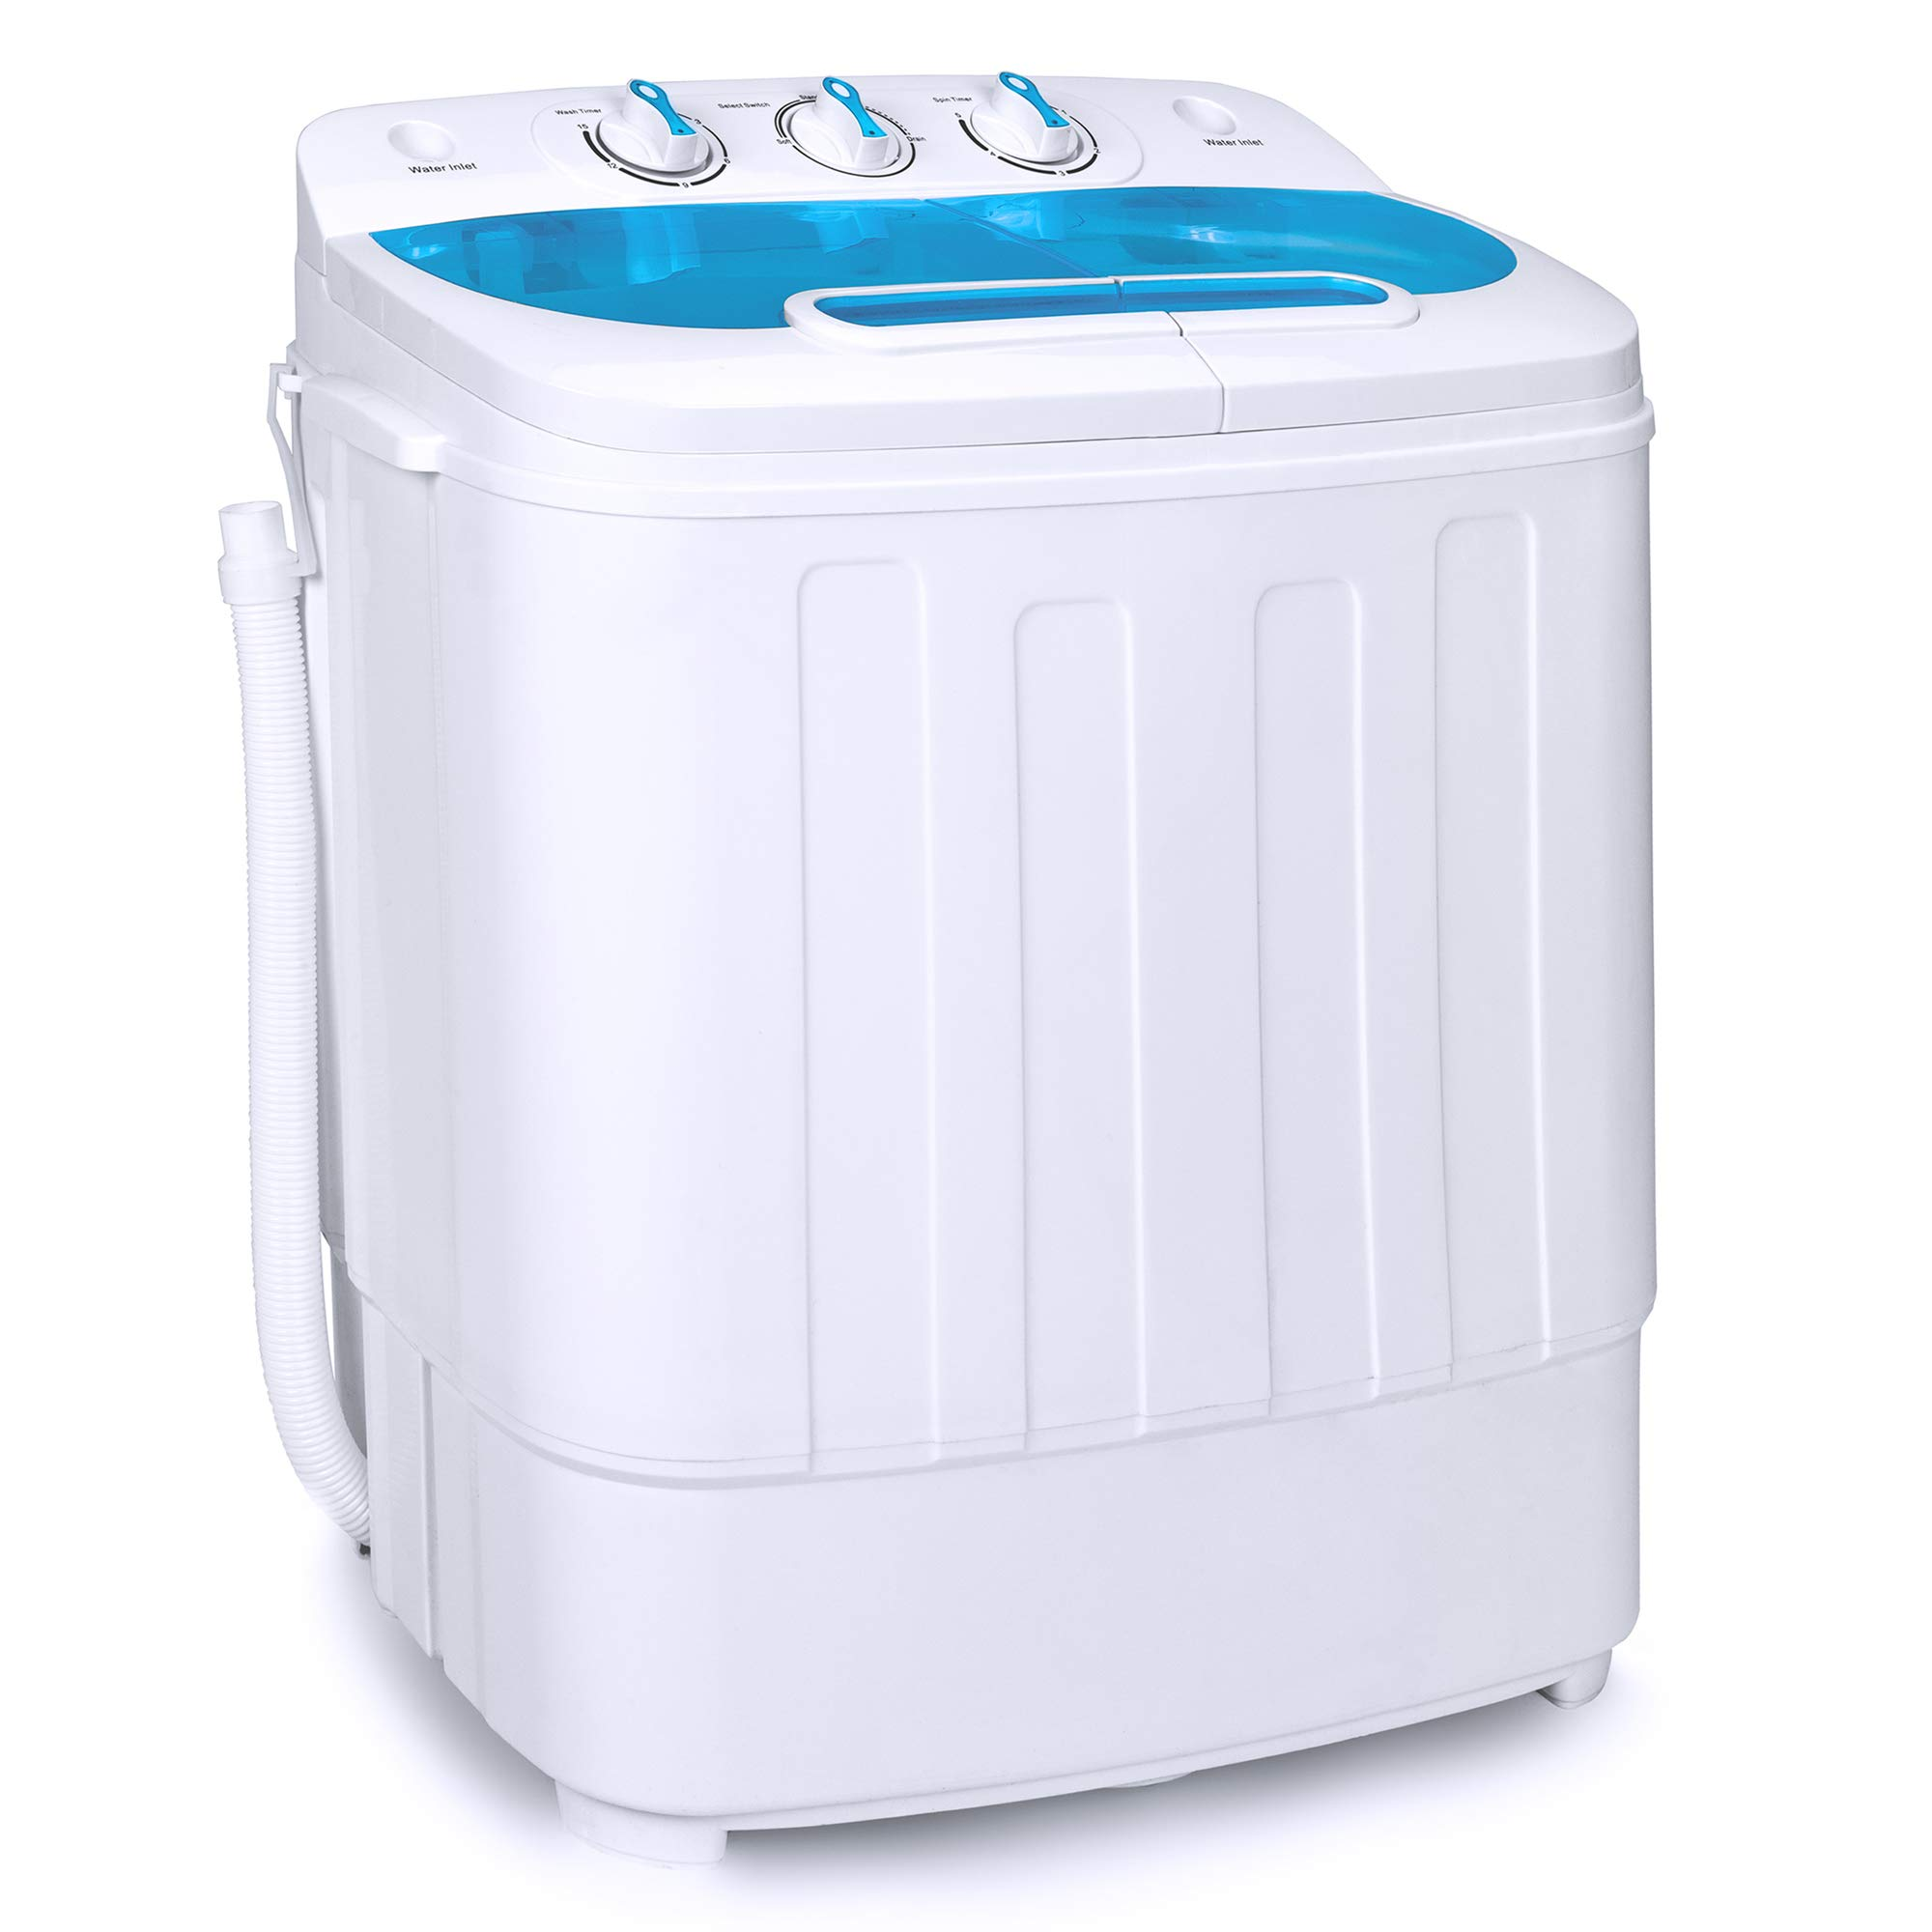 Best Choice Products Portable Compact Twin Tub